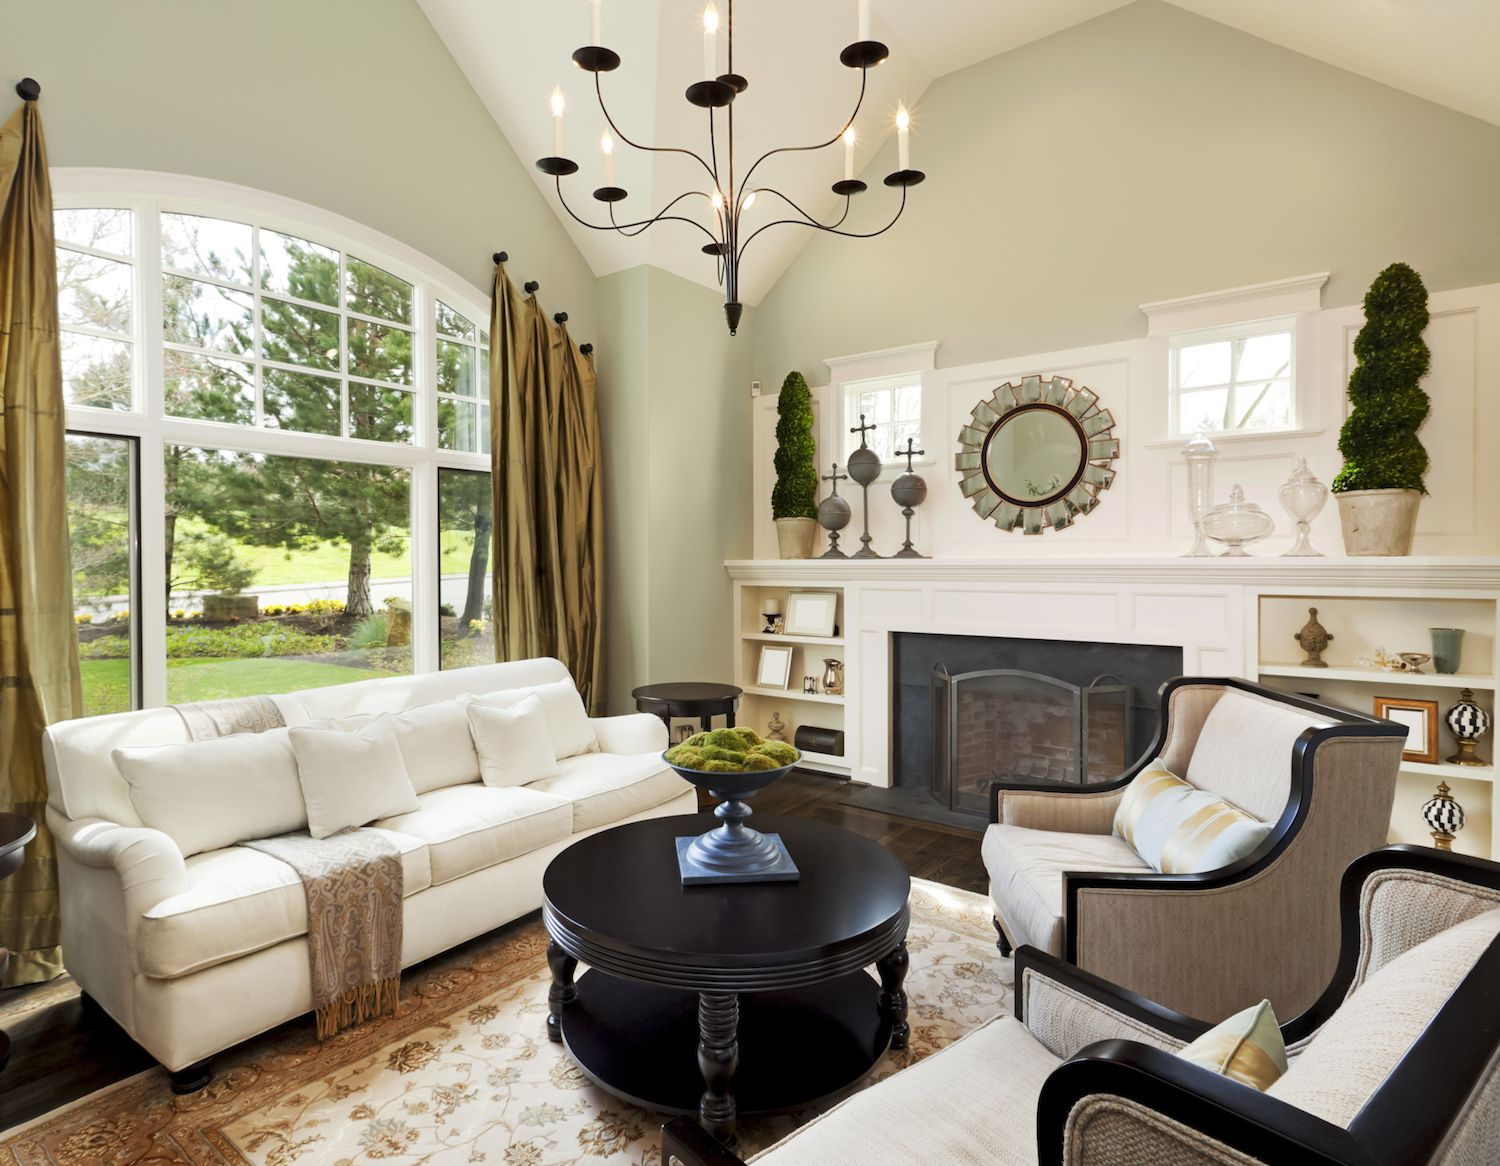 How To Stage Your Open House To Appeal To Buyers - Decorating Ideas For Living Rooms